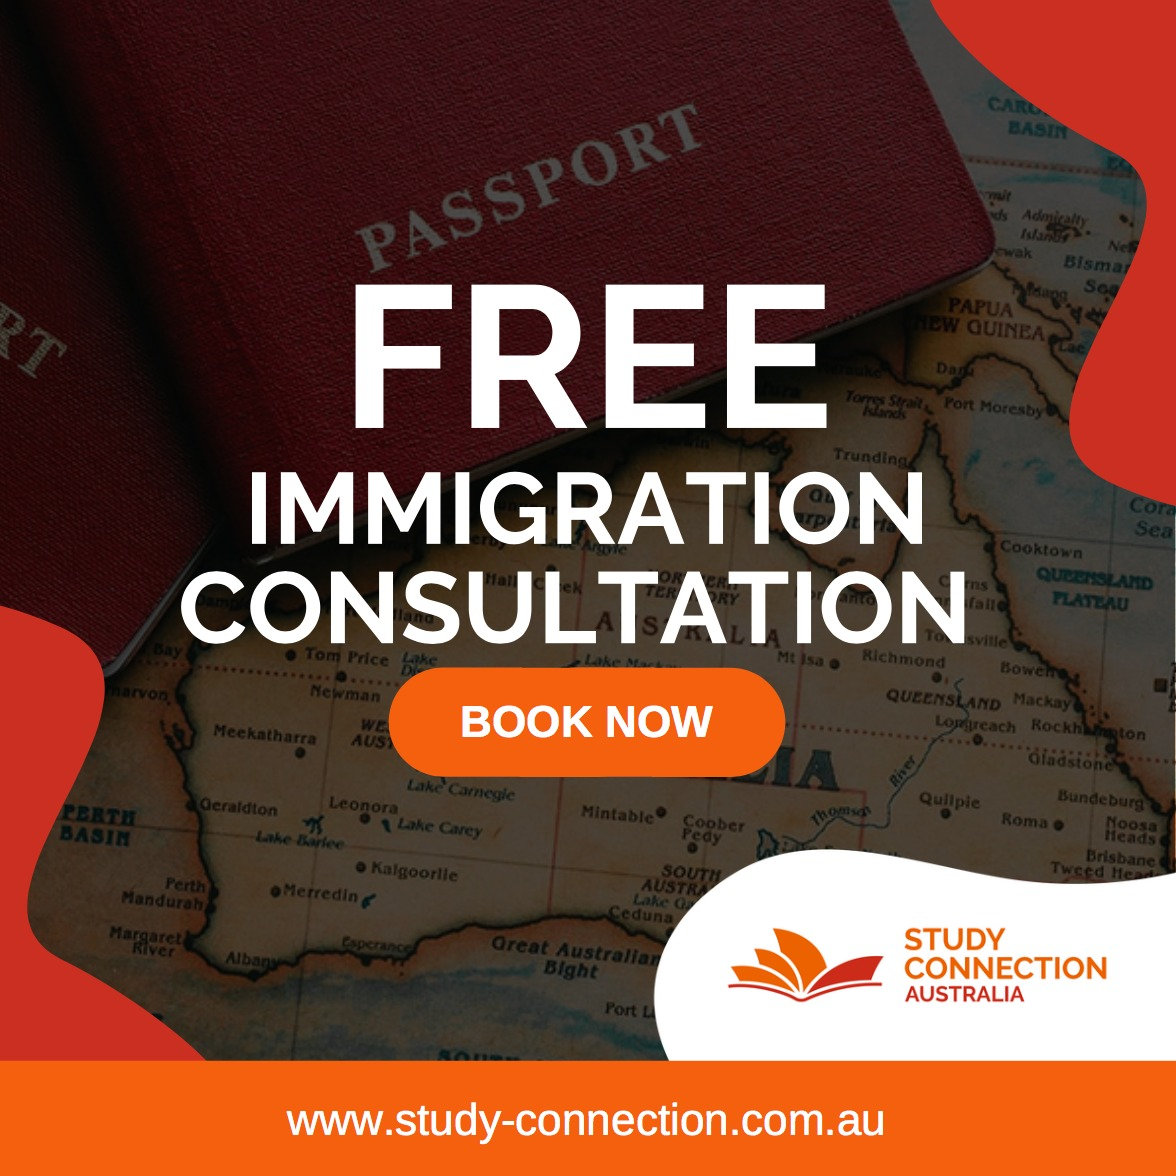 Book your free immigration consultation!